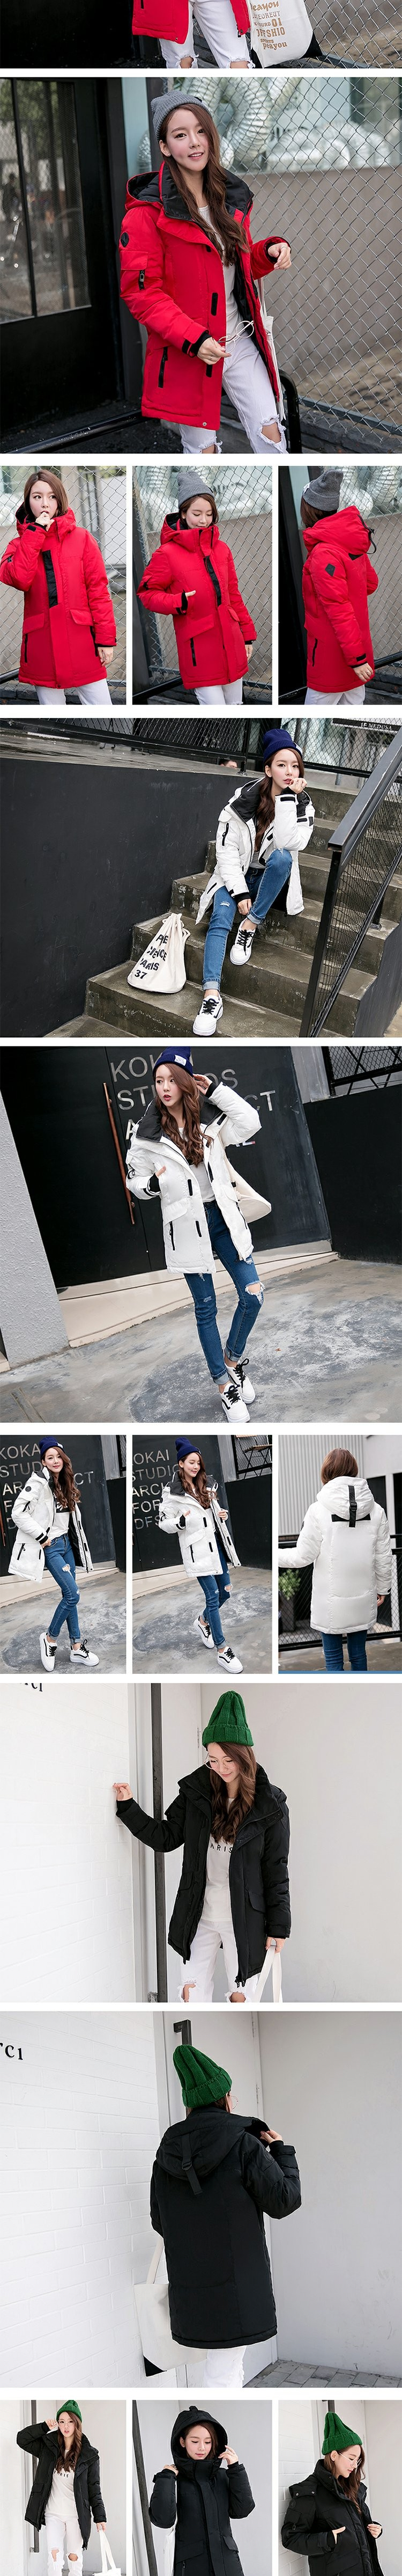 Autumn Winter Women Jacket Women Coats Female Outerwear Plus Size Casual Long Down Cotton Wadded Lady Woman Fashion Warm HM070